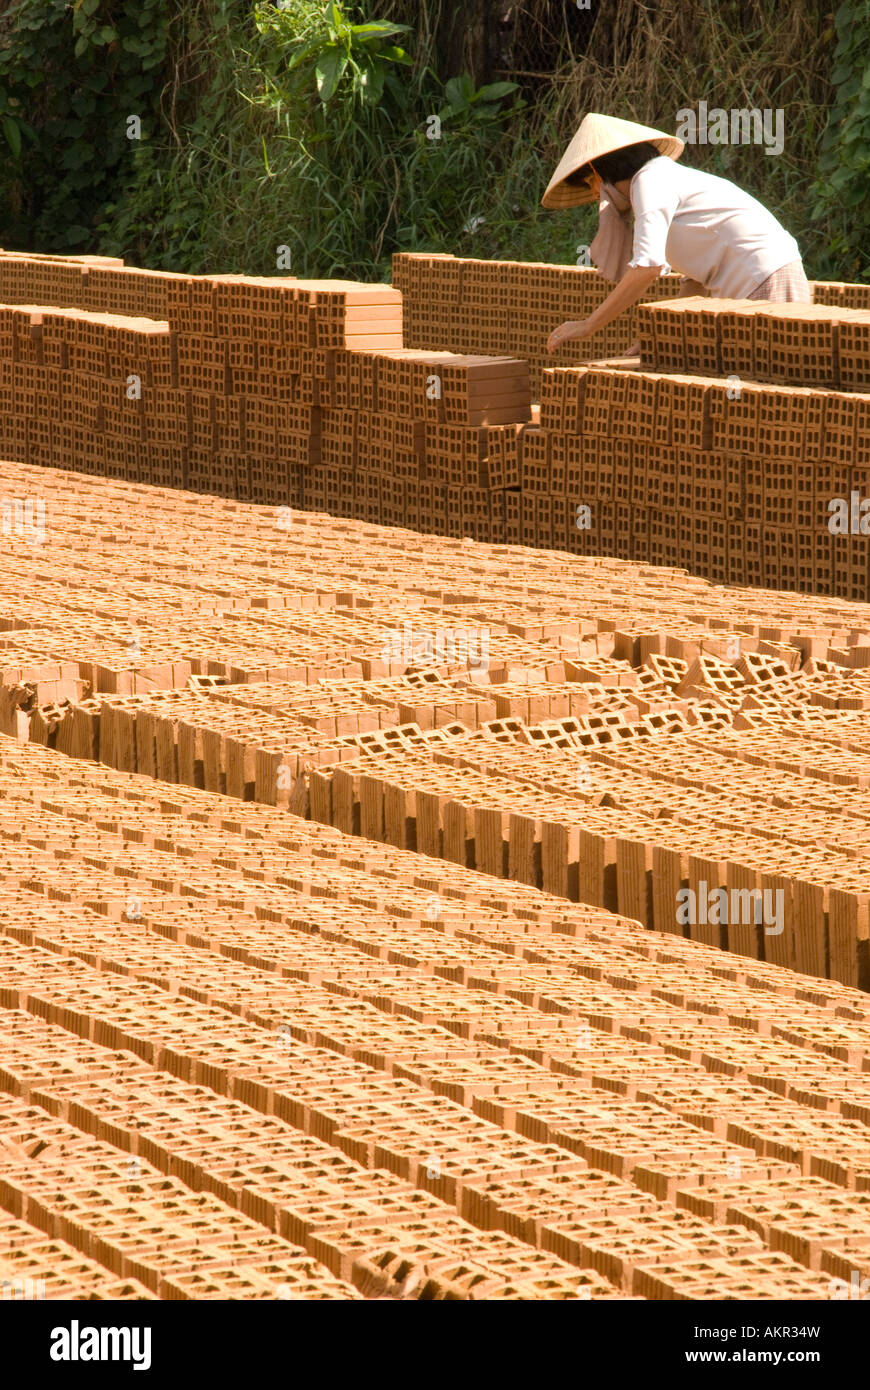 Mekong Delta brick factory in village along Dong Nai River near Phan Thiet - Stock Image